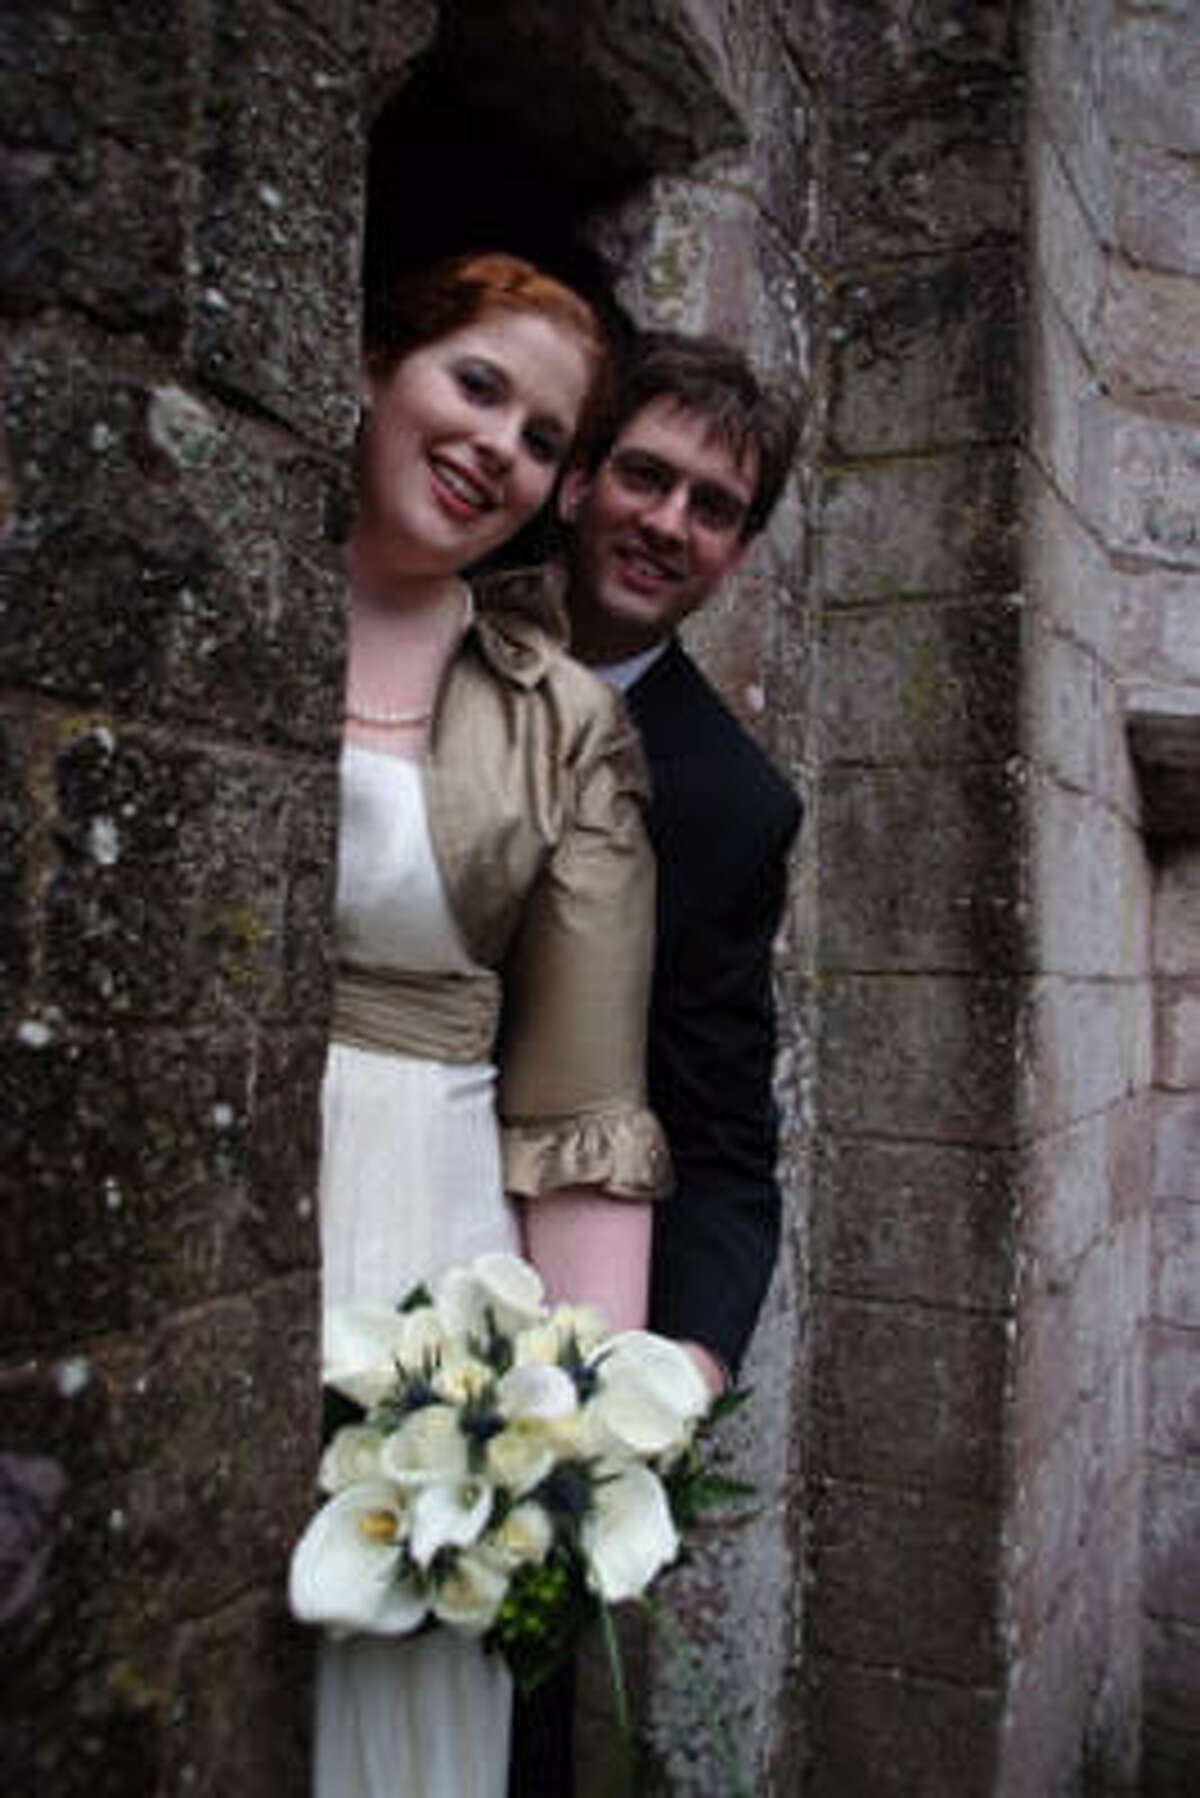 Jordan and Thompson tied the knot in 2008 in Scotland.